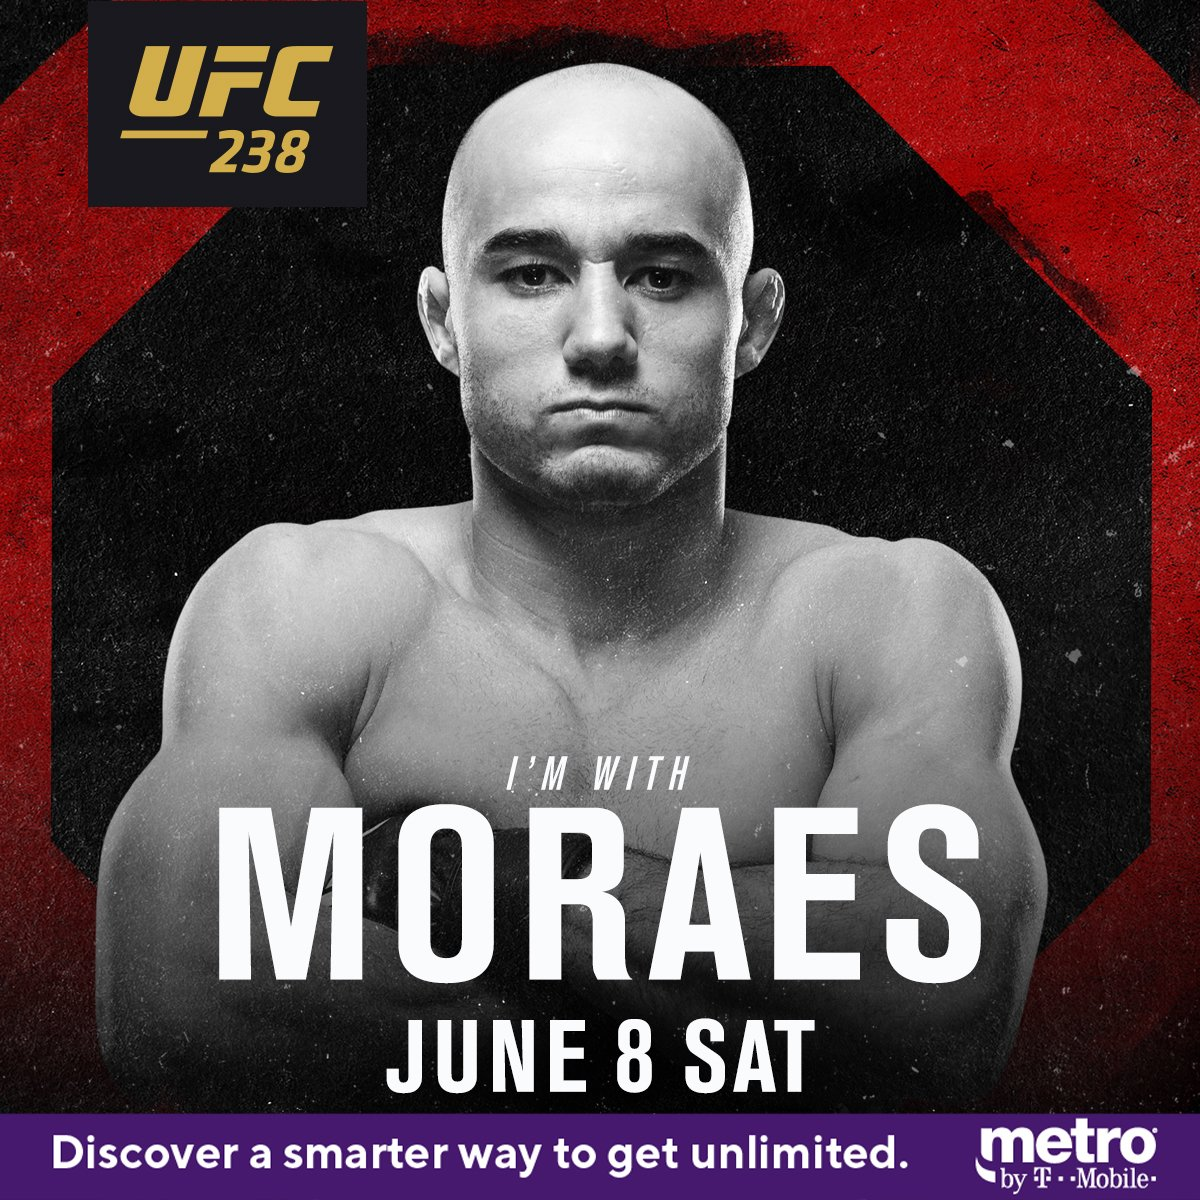 MAGIC 🎩  RT if you're w/ @MMarlonMoraes at #UFC238   LIVE on PPV exclusively on ESPN+ ➡️ http://bit.ly/tw_ufc238  @MetroByTMobile